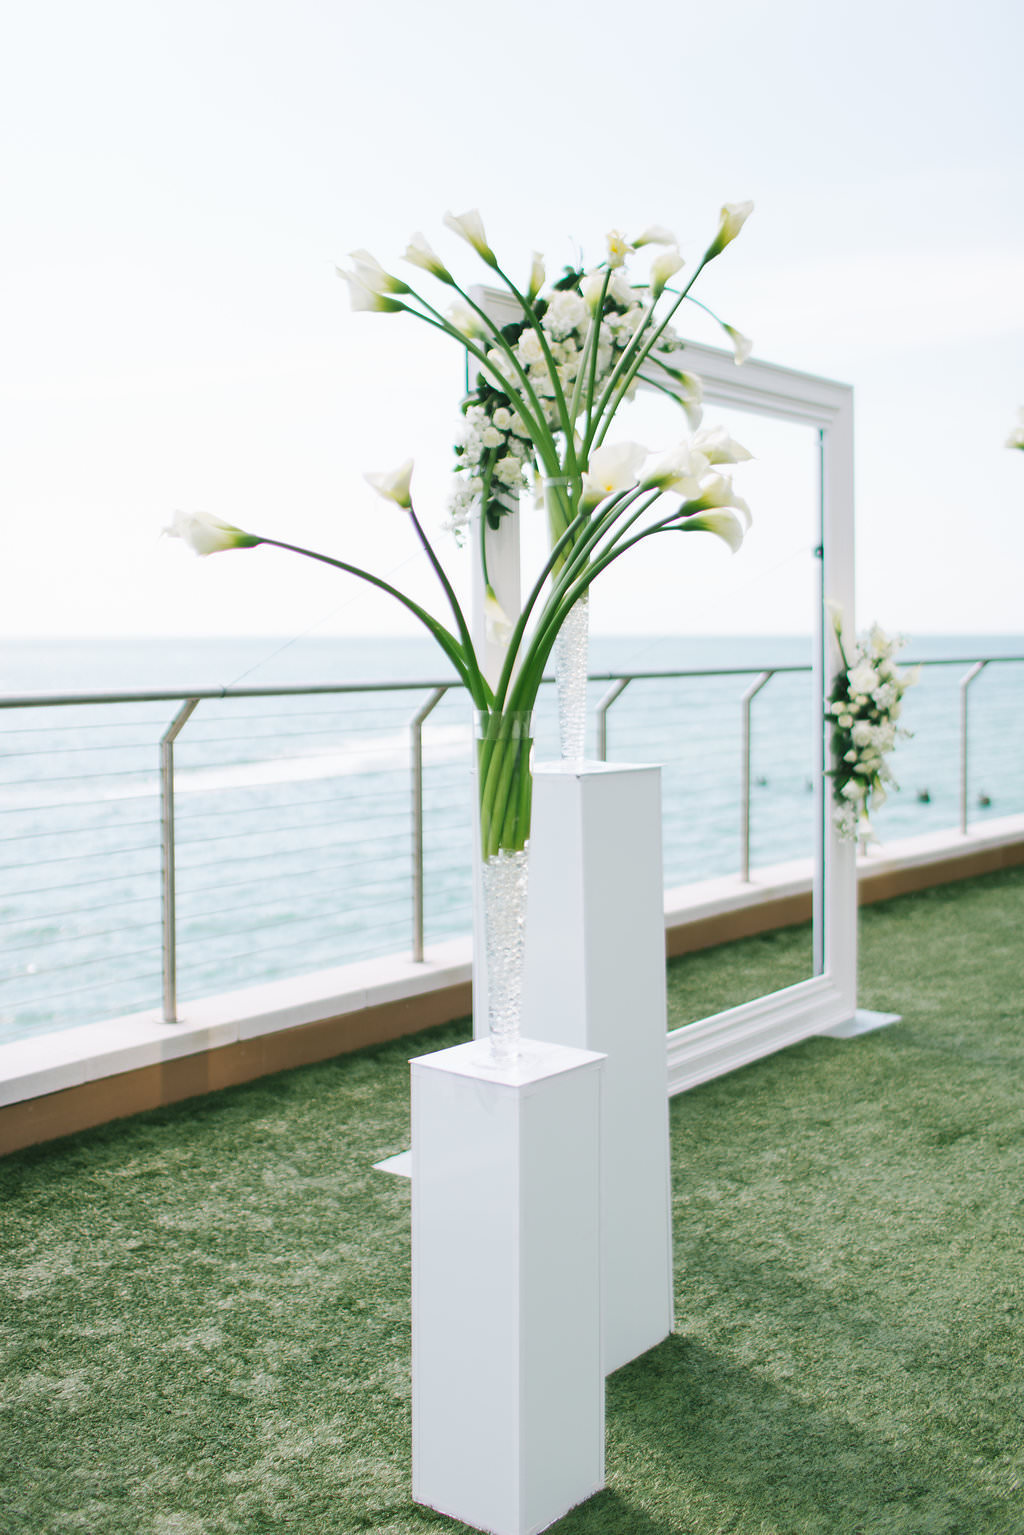 Modern Elegant Waterfront And Lawn Wedding Ceremony Decor White Frame With Greenery And White Floral Arrangements Tall White Pedestals With White Tulips Tampa Bay Wedding Photographer Kera Photography Clearwater Beach